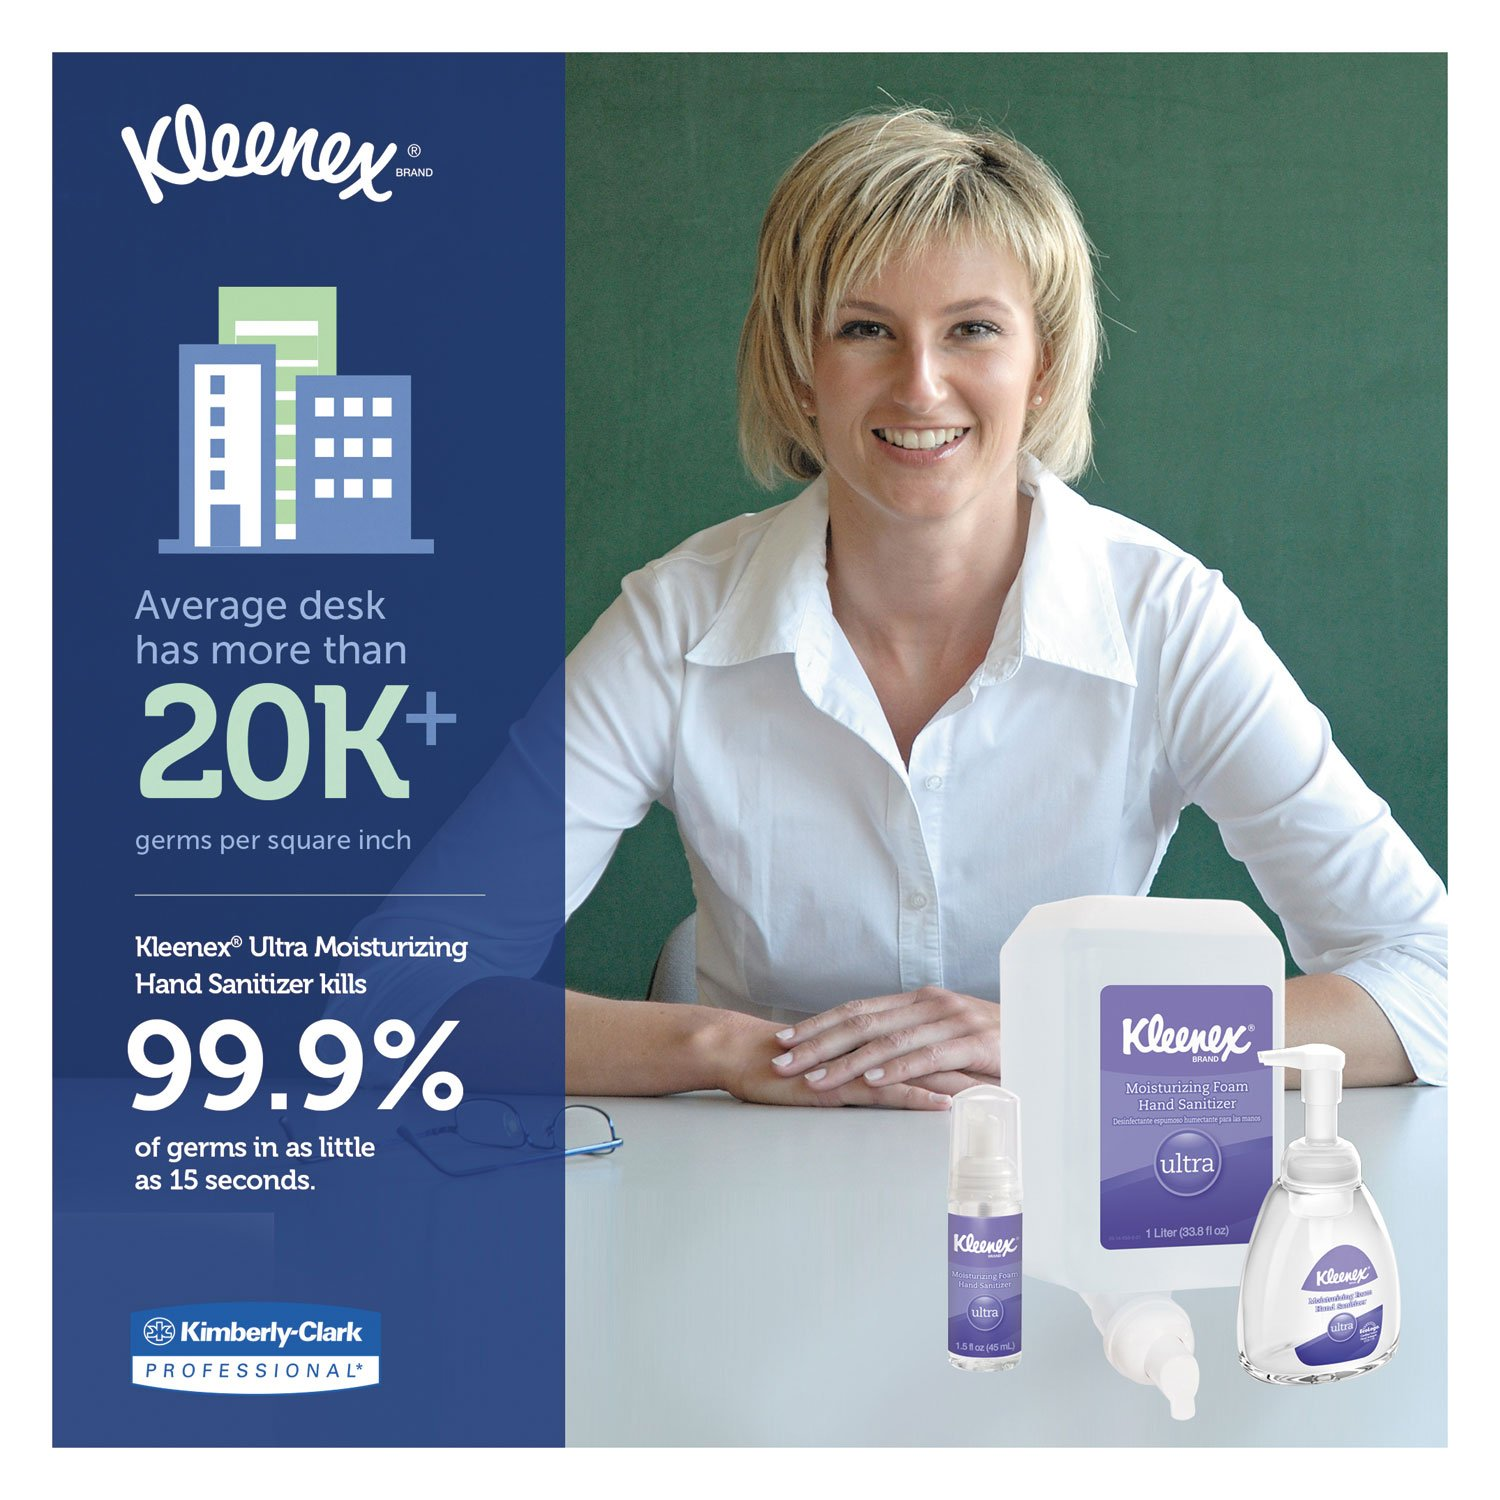 Kleenex 34700 Ultra Moisturizing Foam Hand Sanitizer, 1,000 ml, Clear (Case of 6) by Kleenex